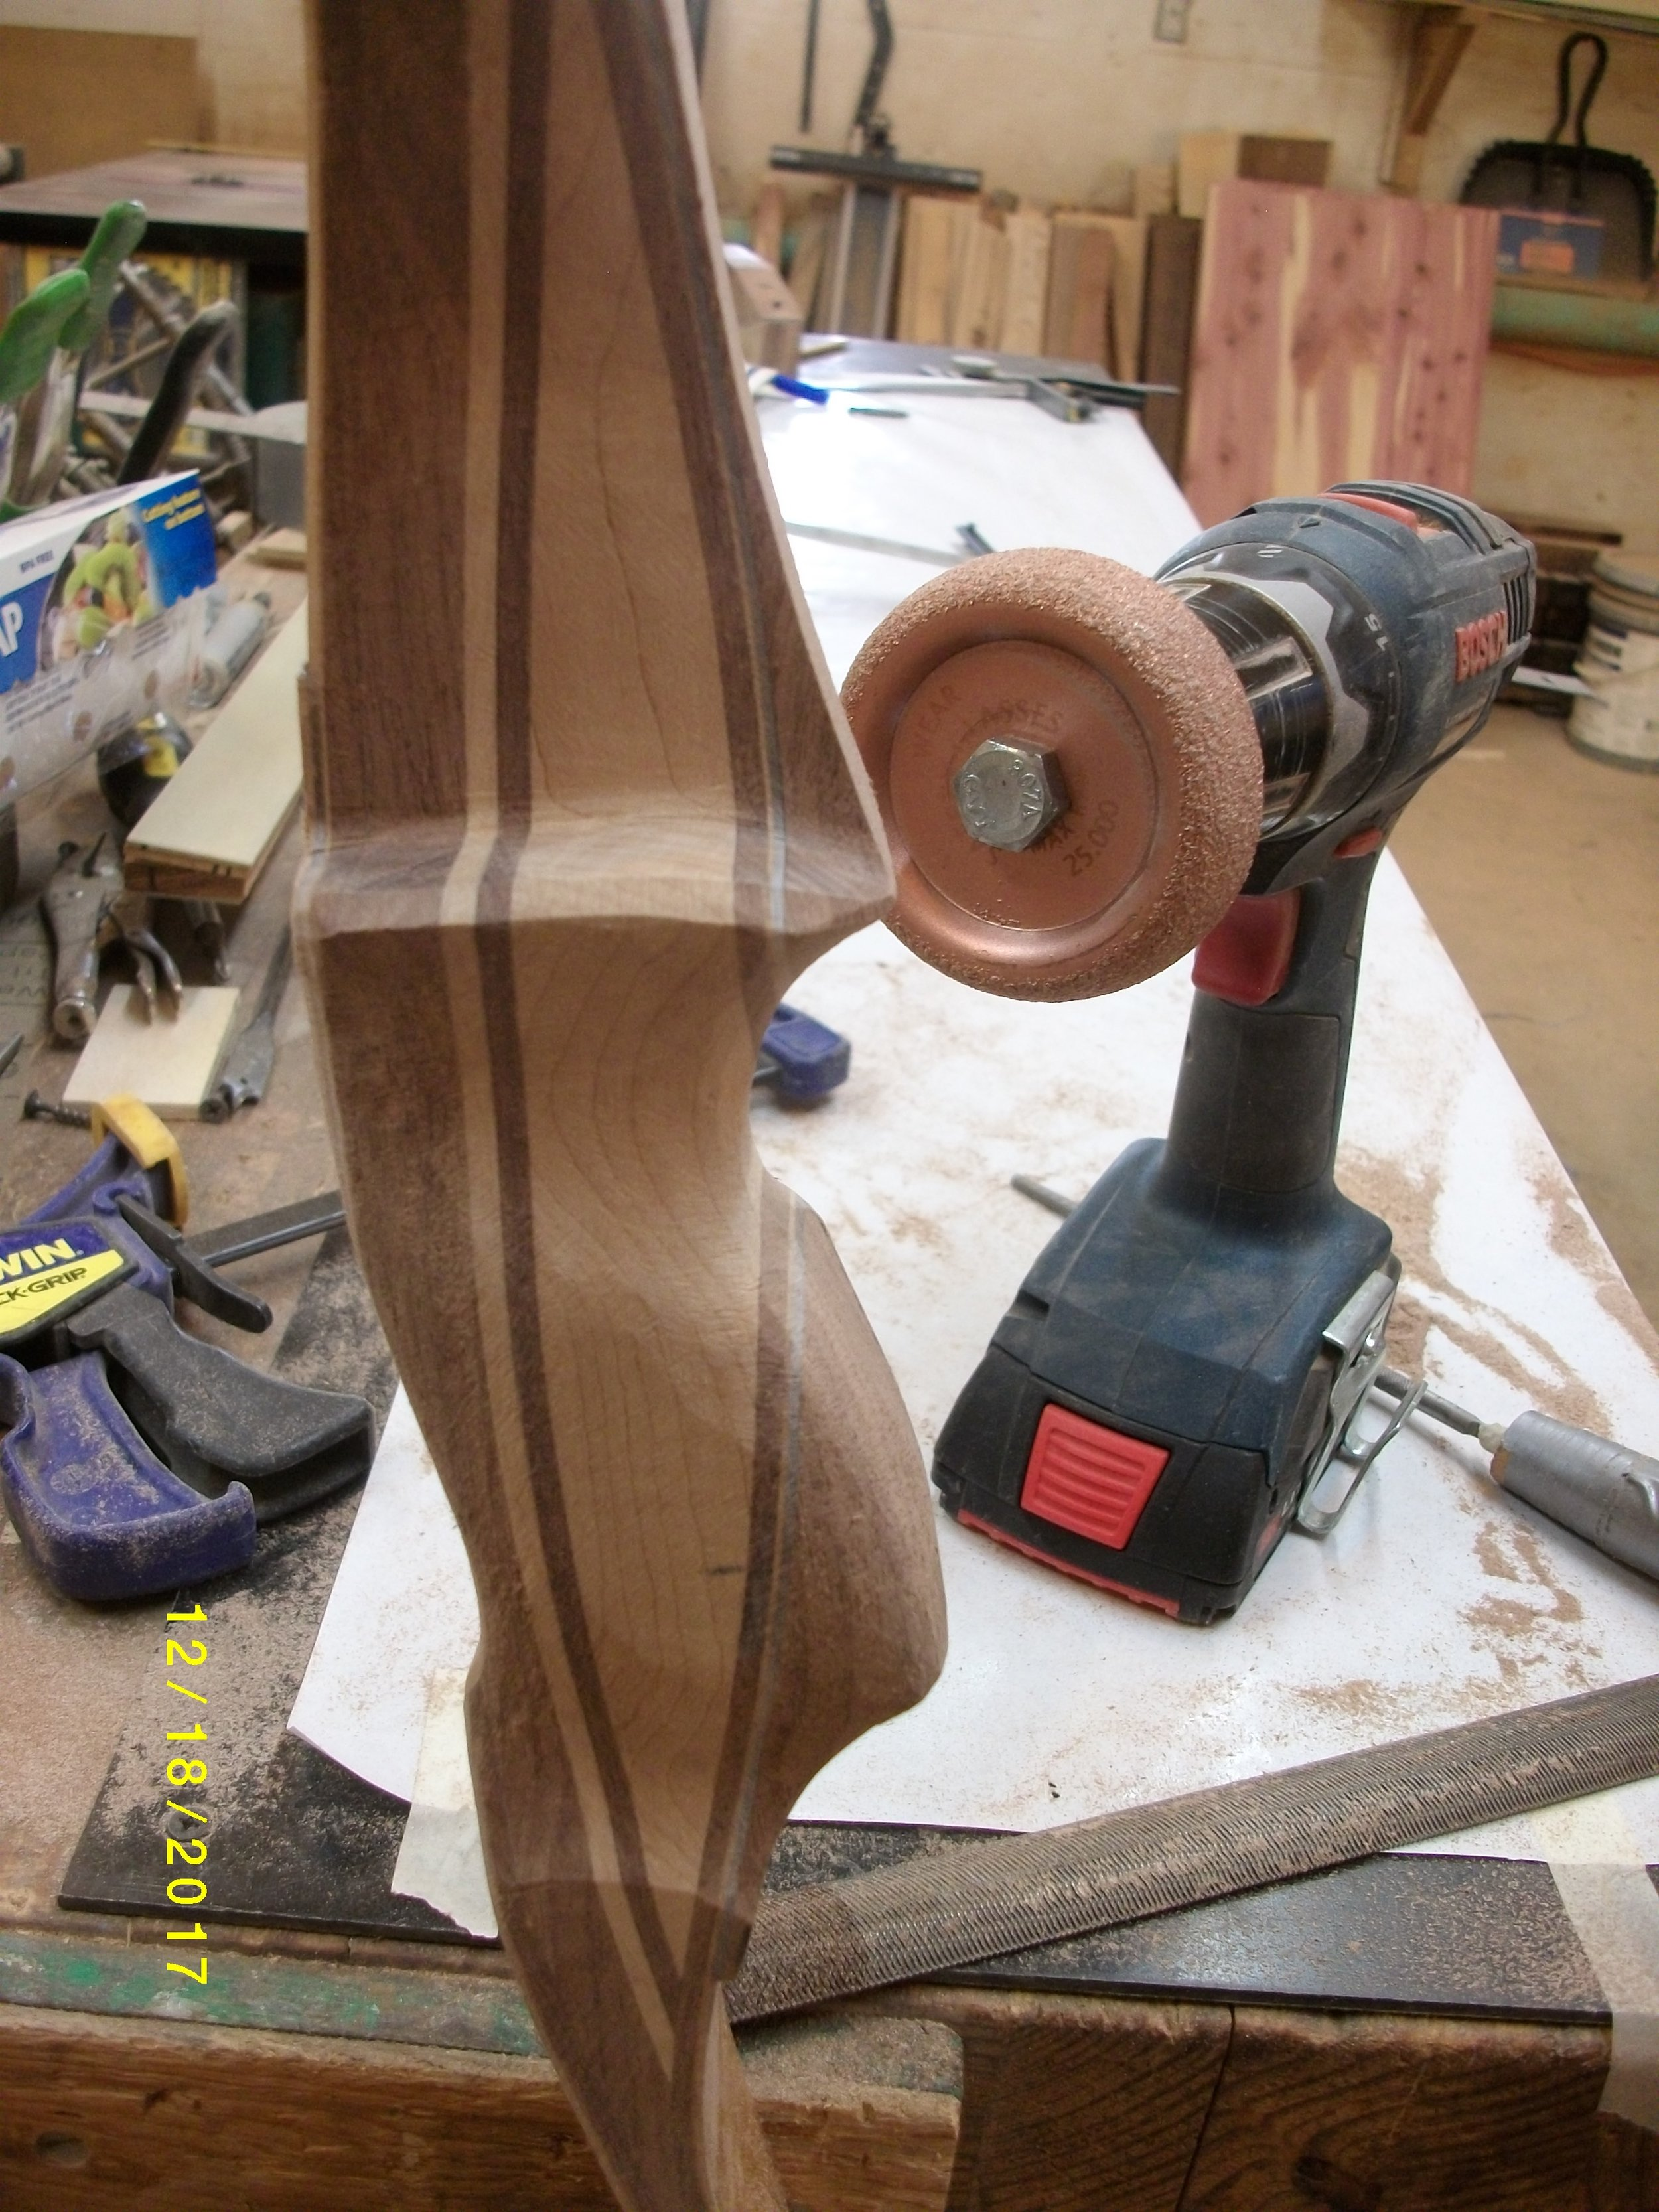 Here I have some more work done on shelf, sight window and grip. Notice the tool in the drill. It is for roughing up rubber to make a tire repair. Works pretty well on shaping, variable speed cordless drill, and when you need to turn wheel the other way so you don't peel the glass loose , just reverse the drill. The glass needs to be worked into the wood always.   Also when you work the limb edges or peel tape, always start at center, or you will pull glass fibers up and ruin a bow!!  Next are just some pics of how the bow is coming along. Will try to finish the bow and build soon!!